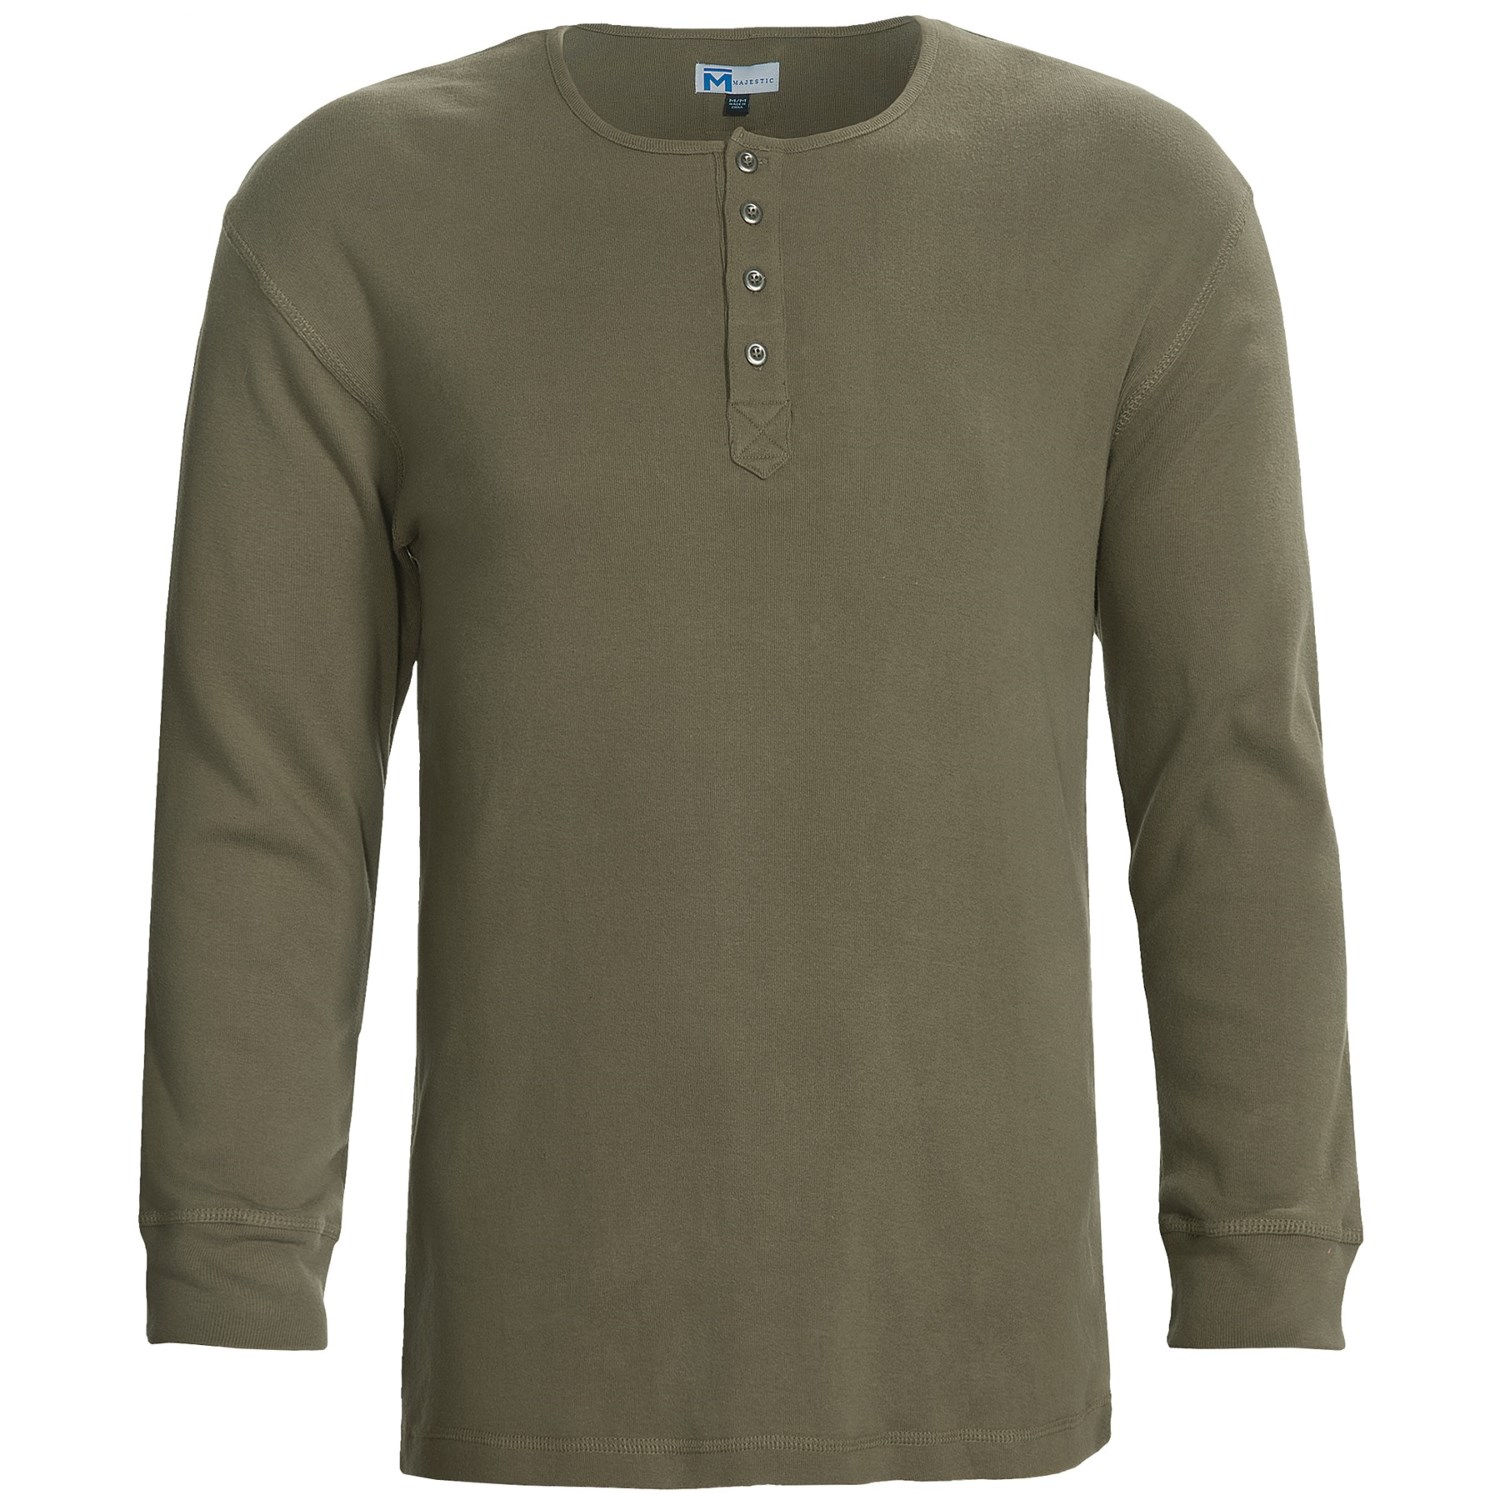 Majestic sanded cotton henley shirt for men 6442c save 48 for Long sleeve henley shirts for men